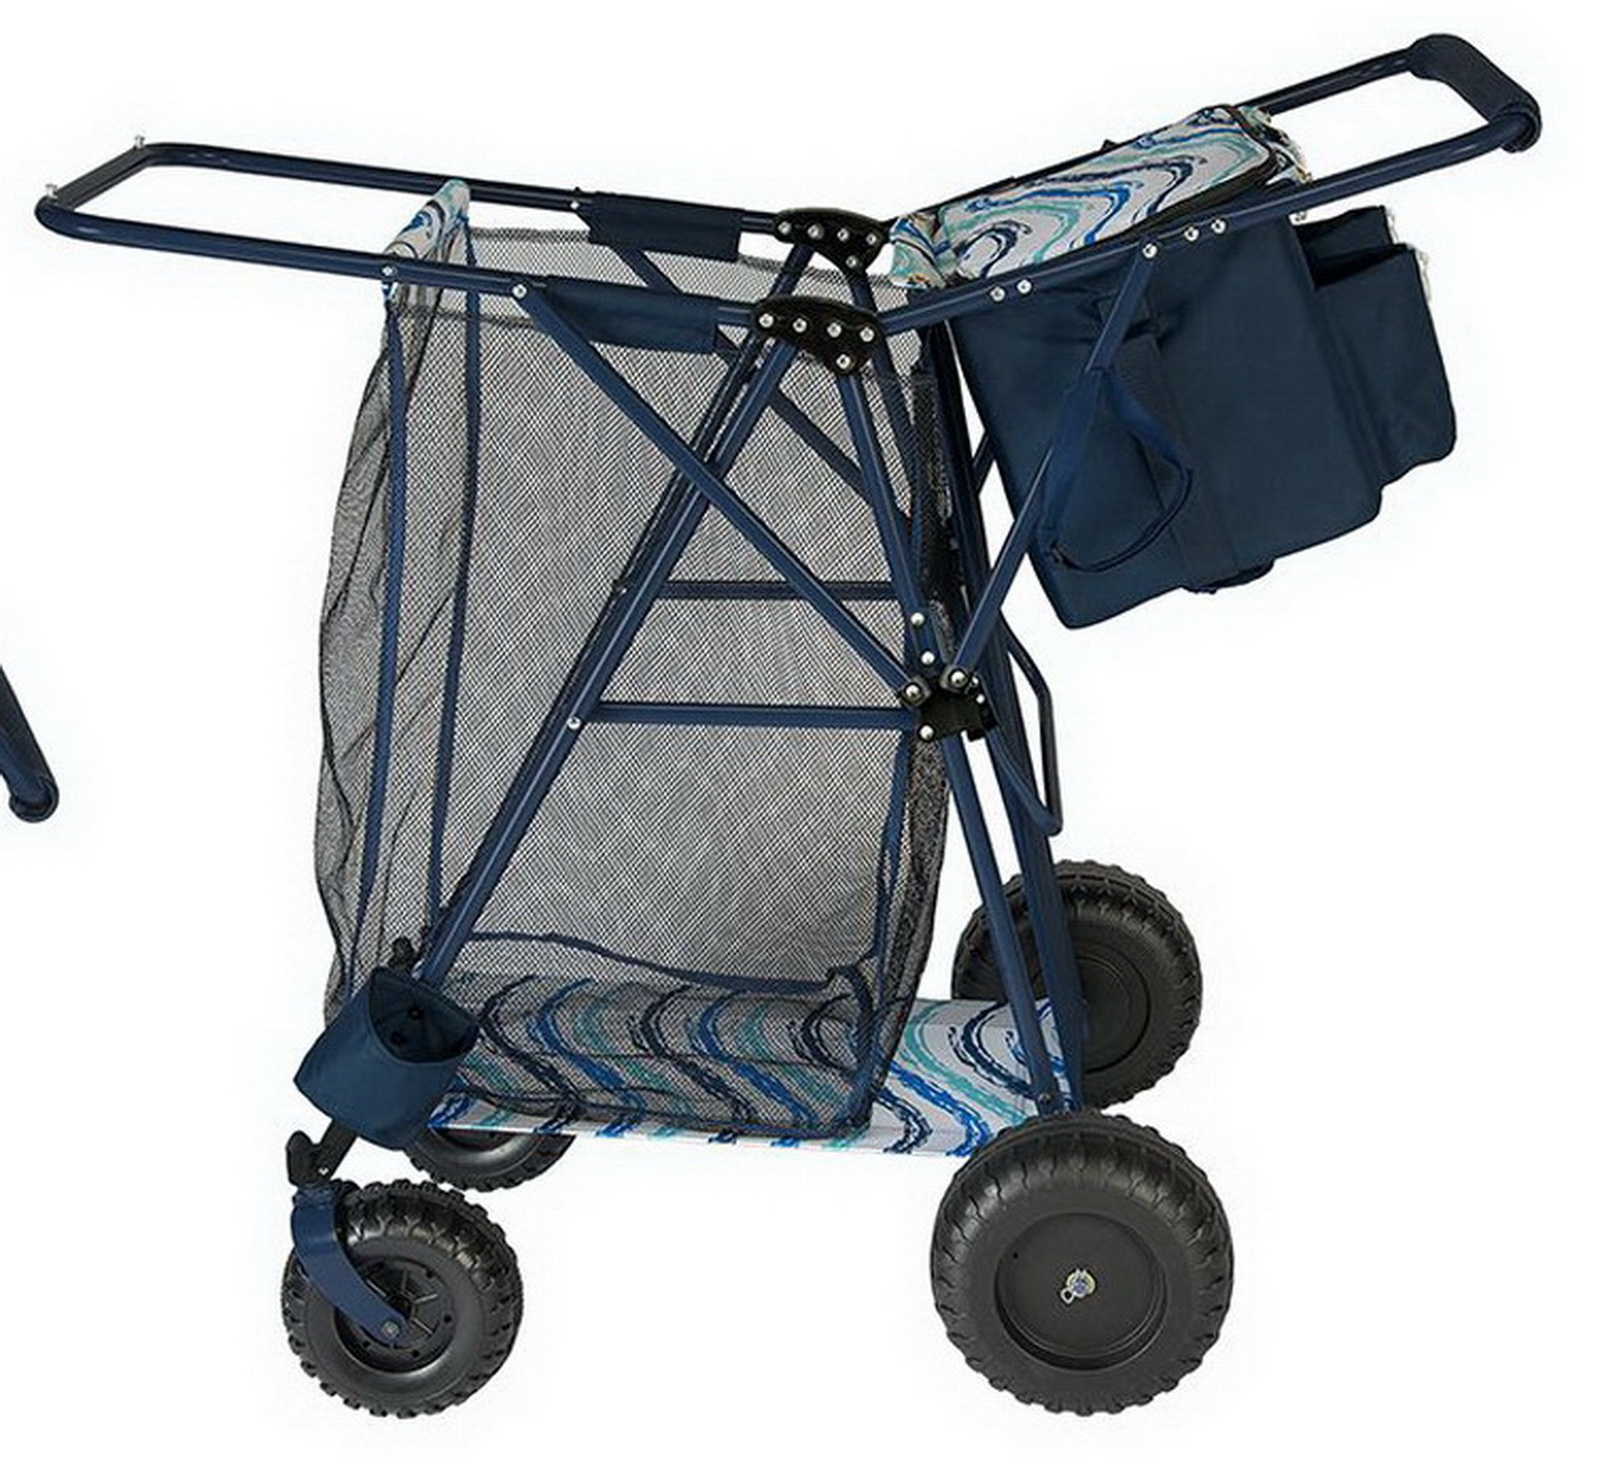 Big folding beach cart portable cooler shopping gear for Folding fishing cart